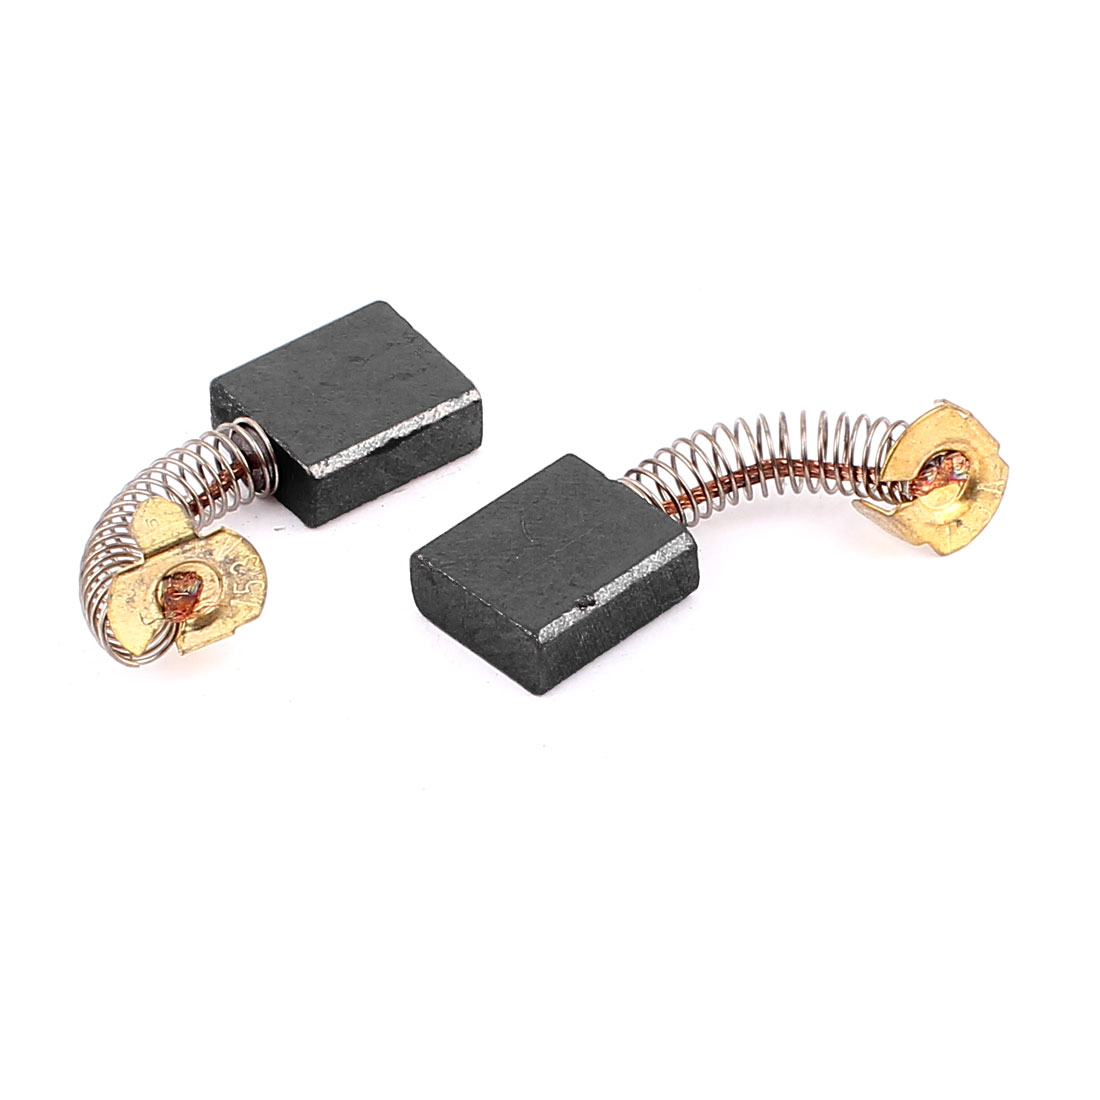 Pair Replacement Motor Carbon Brushes 20mm x 17mm x 7mm for Electric Motors